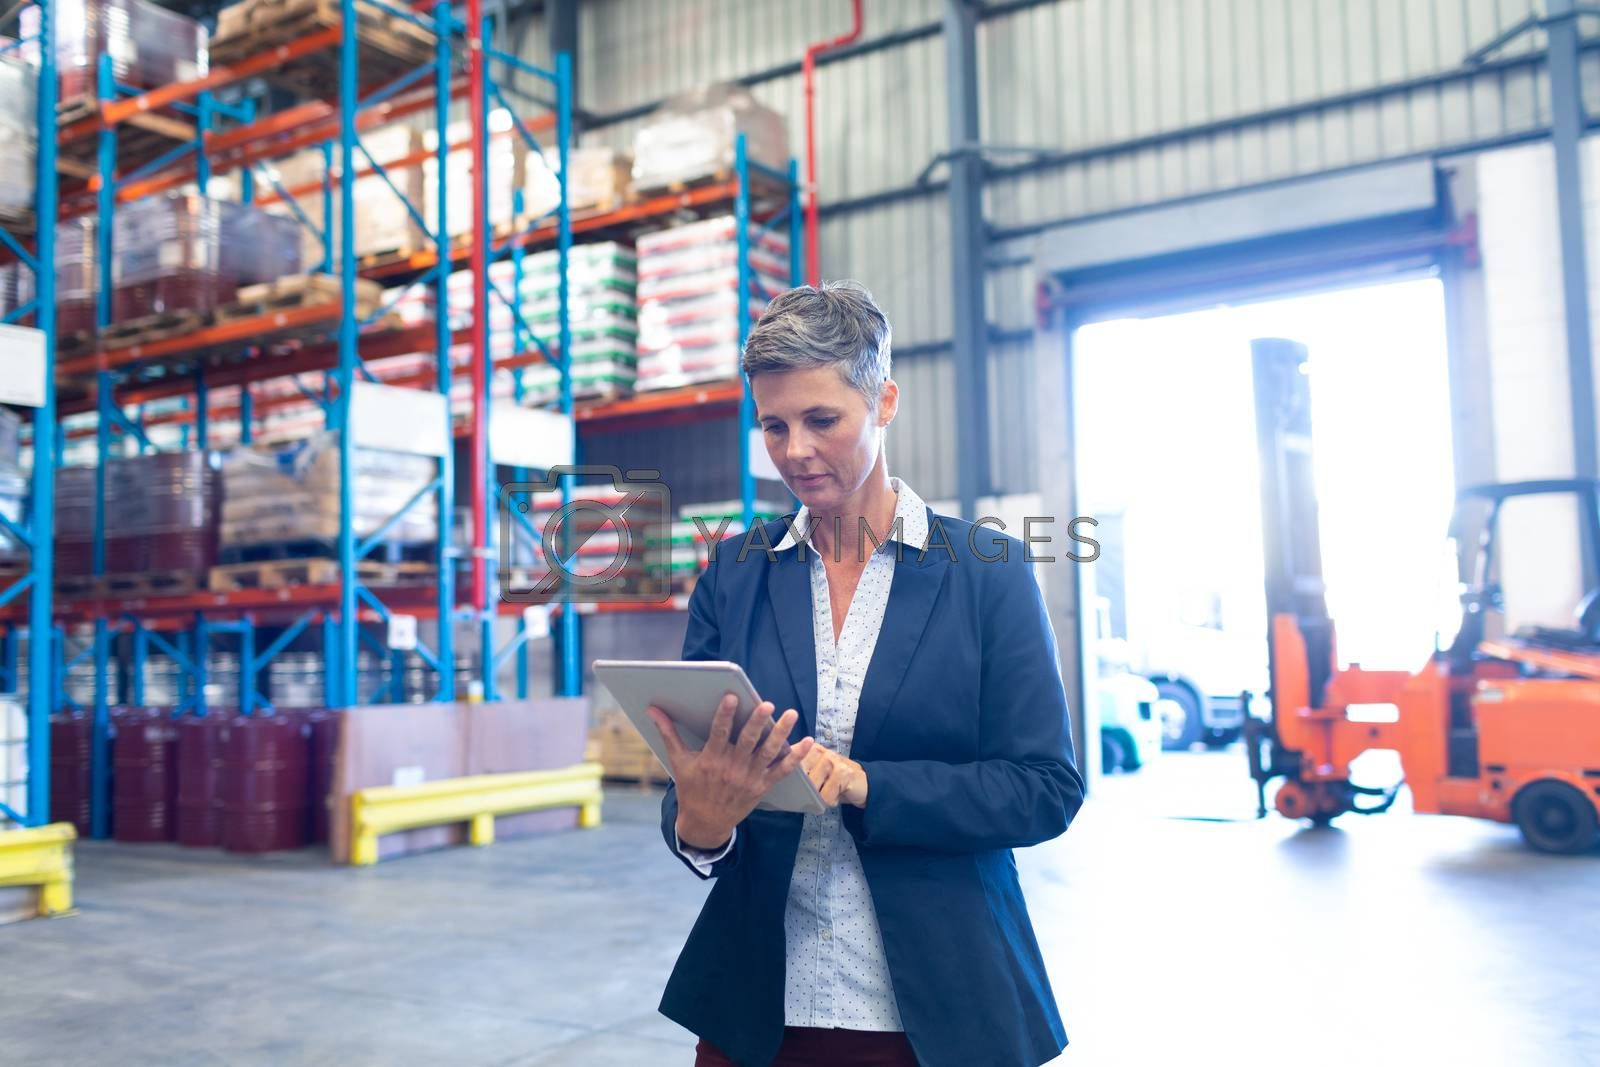 Front view of pretty mature Caucasian female manager using digital tablet in warehouse. This is a freight transportation and distribution warehouse. Industrial and industrial workers concept